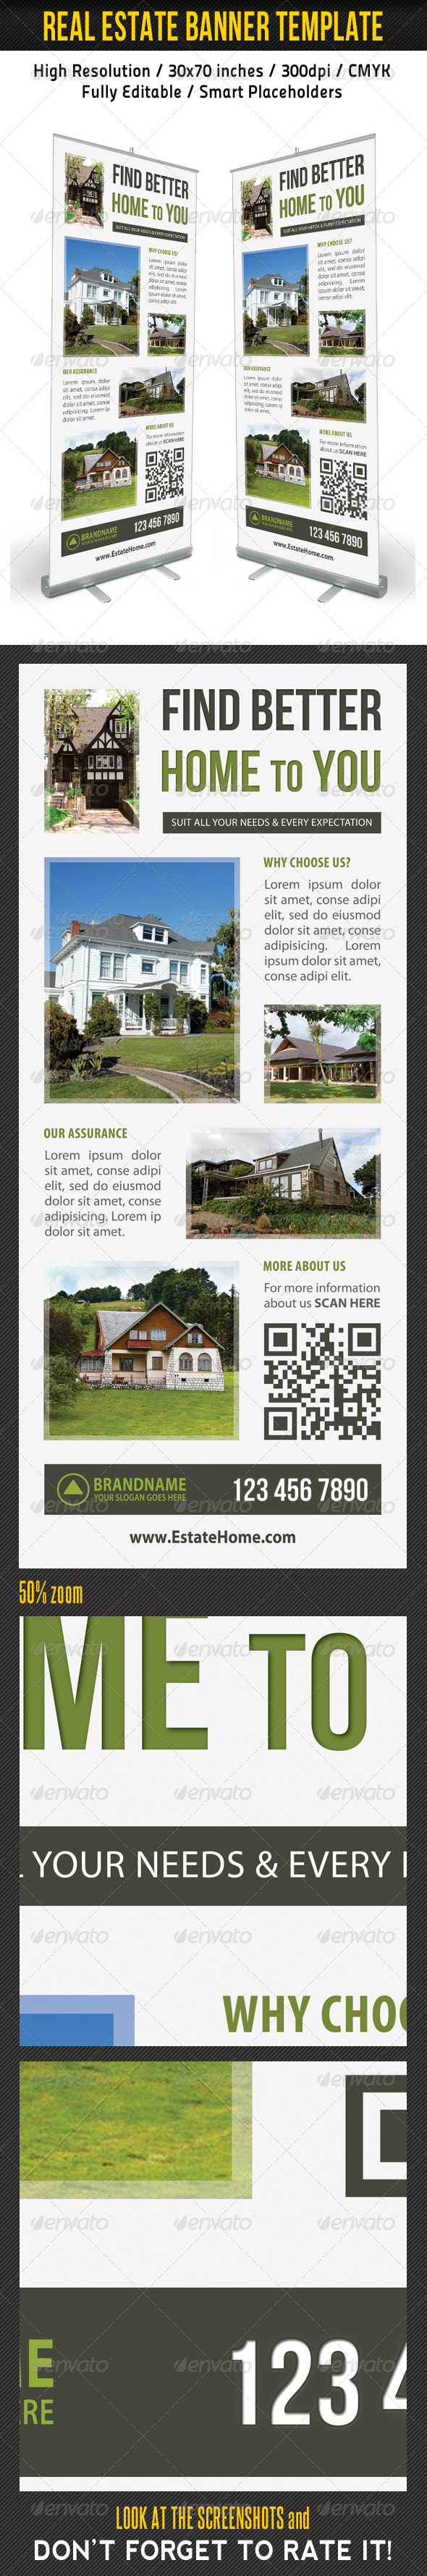 Real Estate Banner Template 10 - Signage Print Templates